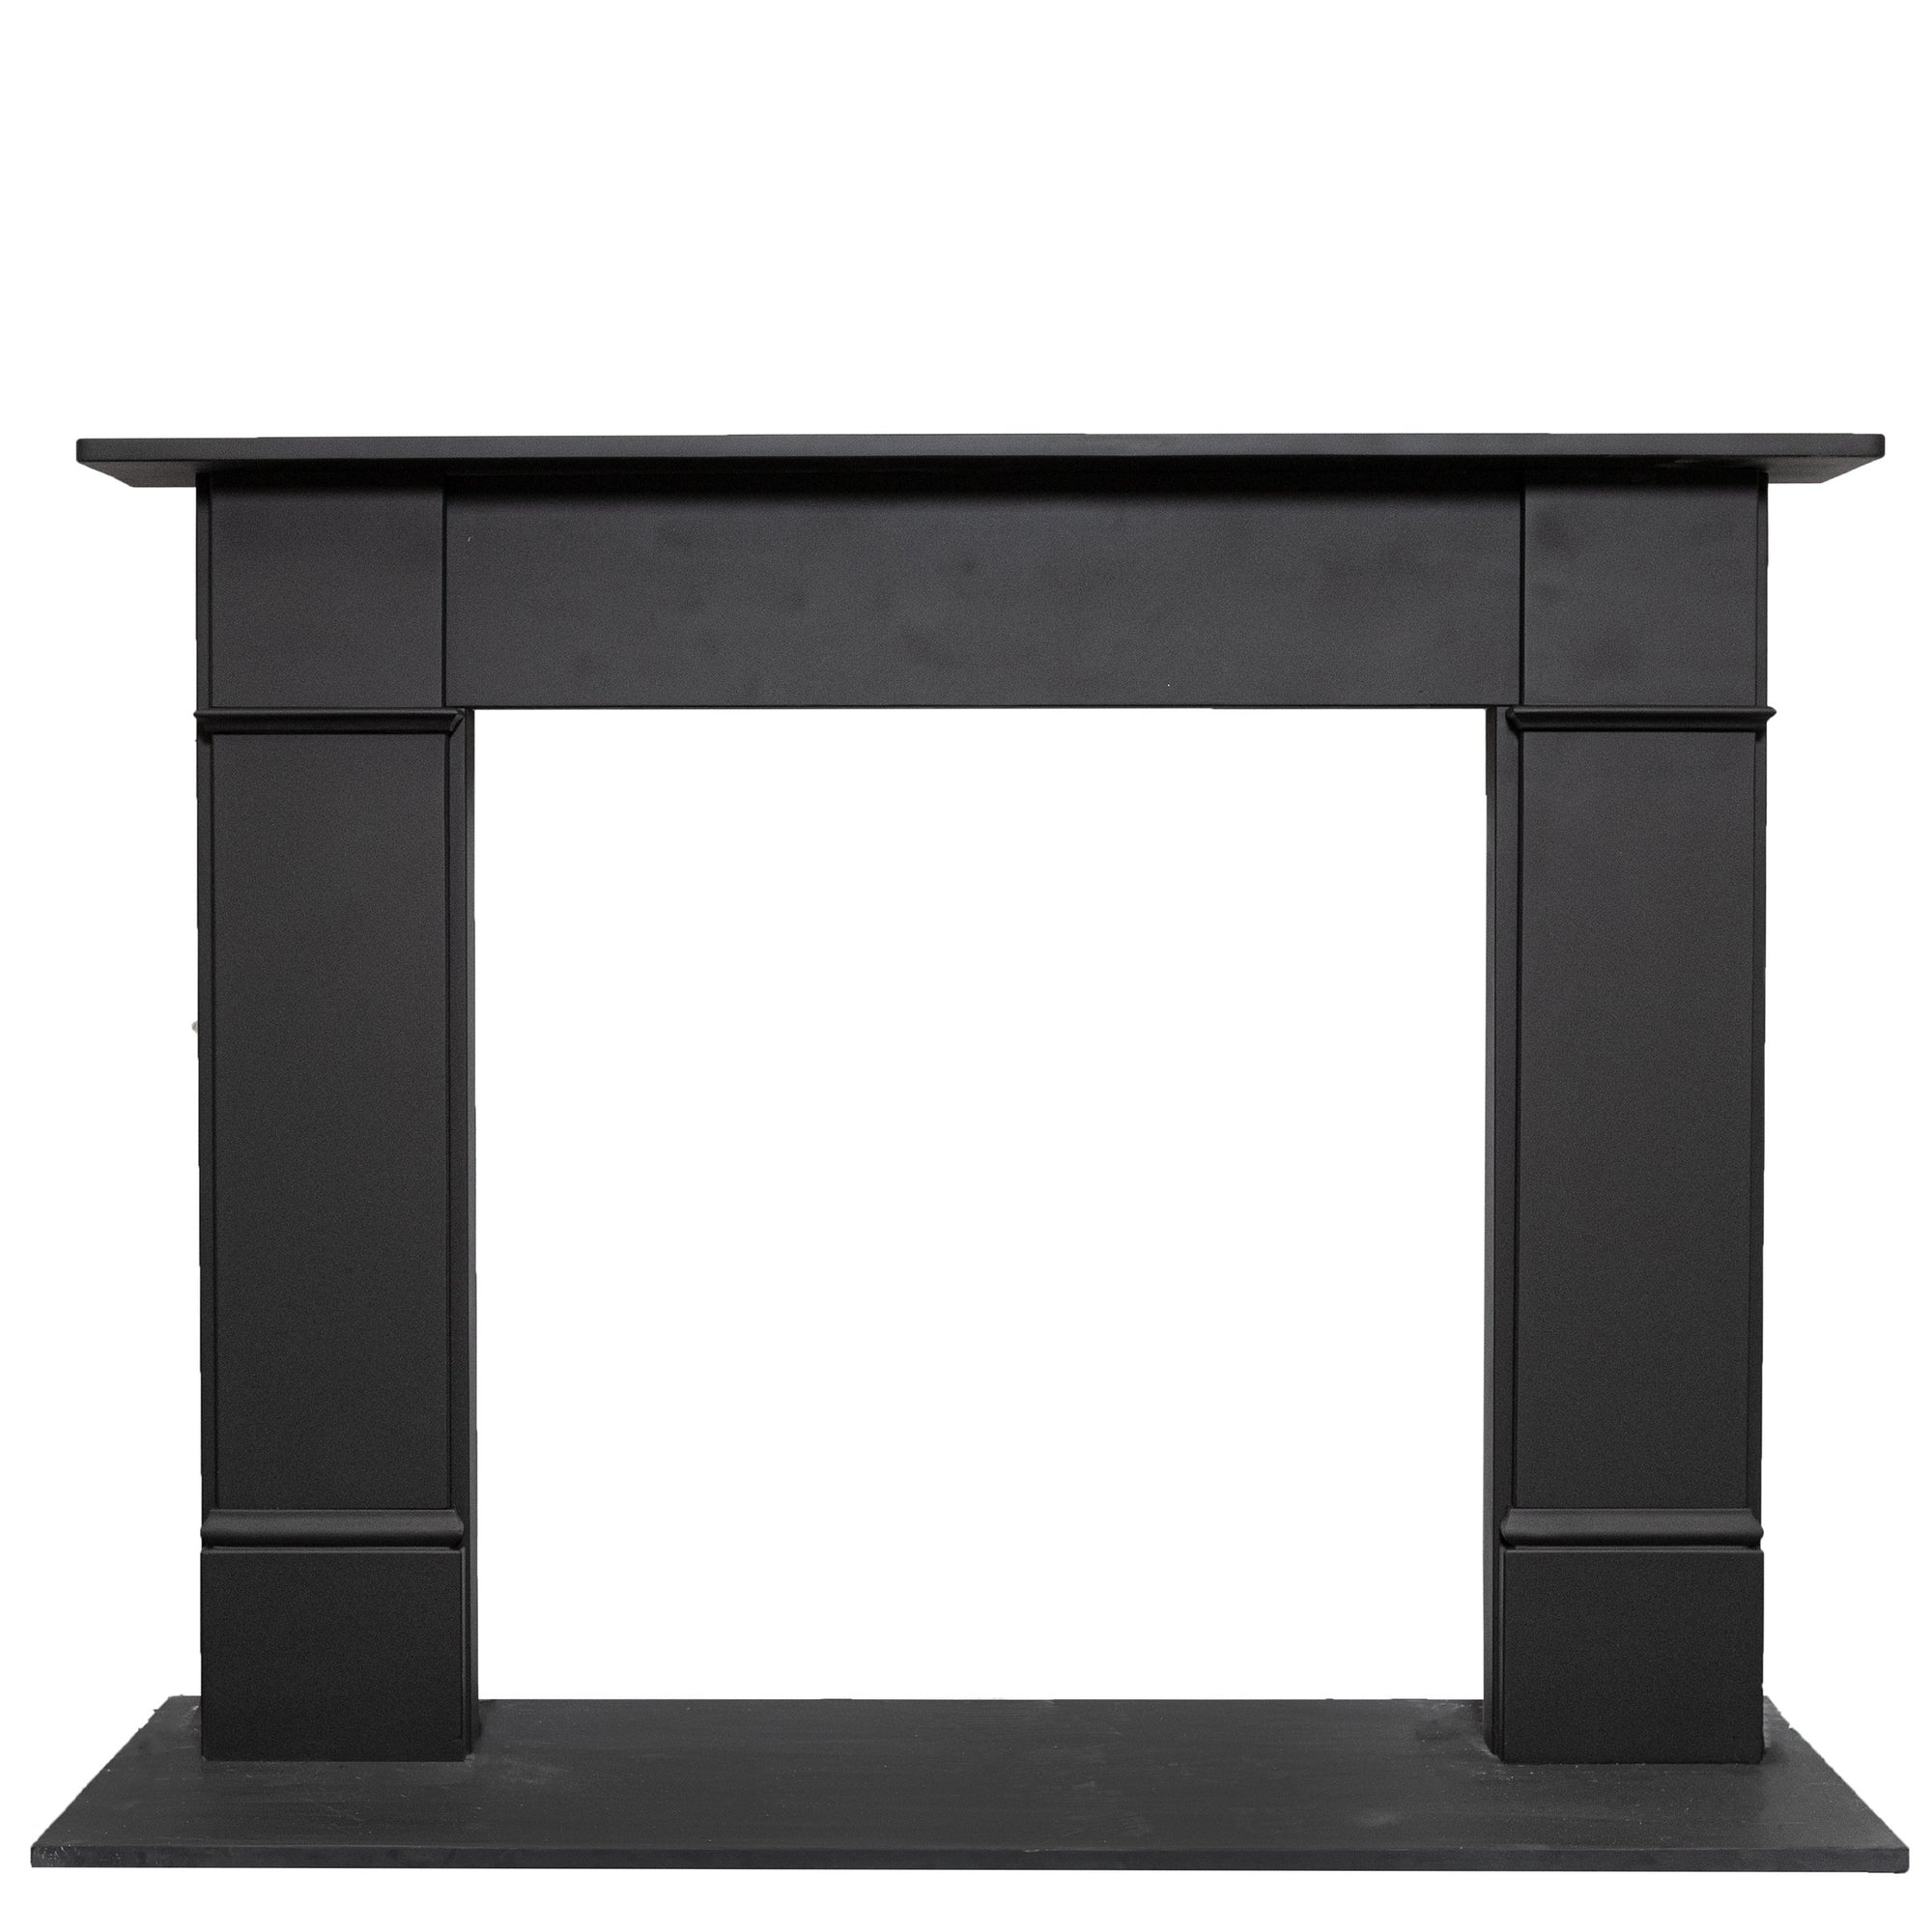 Late Georgian | Early Victorian Style Black Slate Chimneypiece